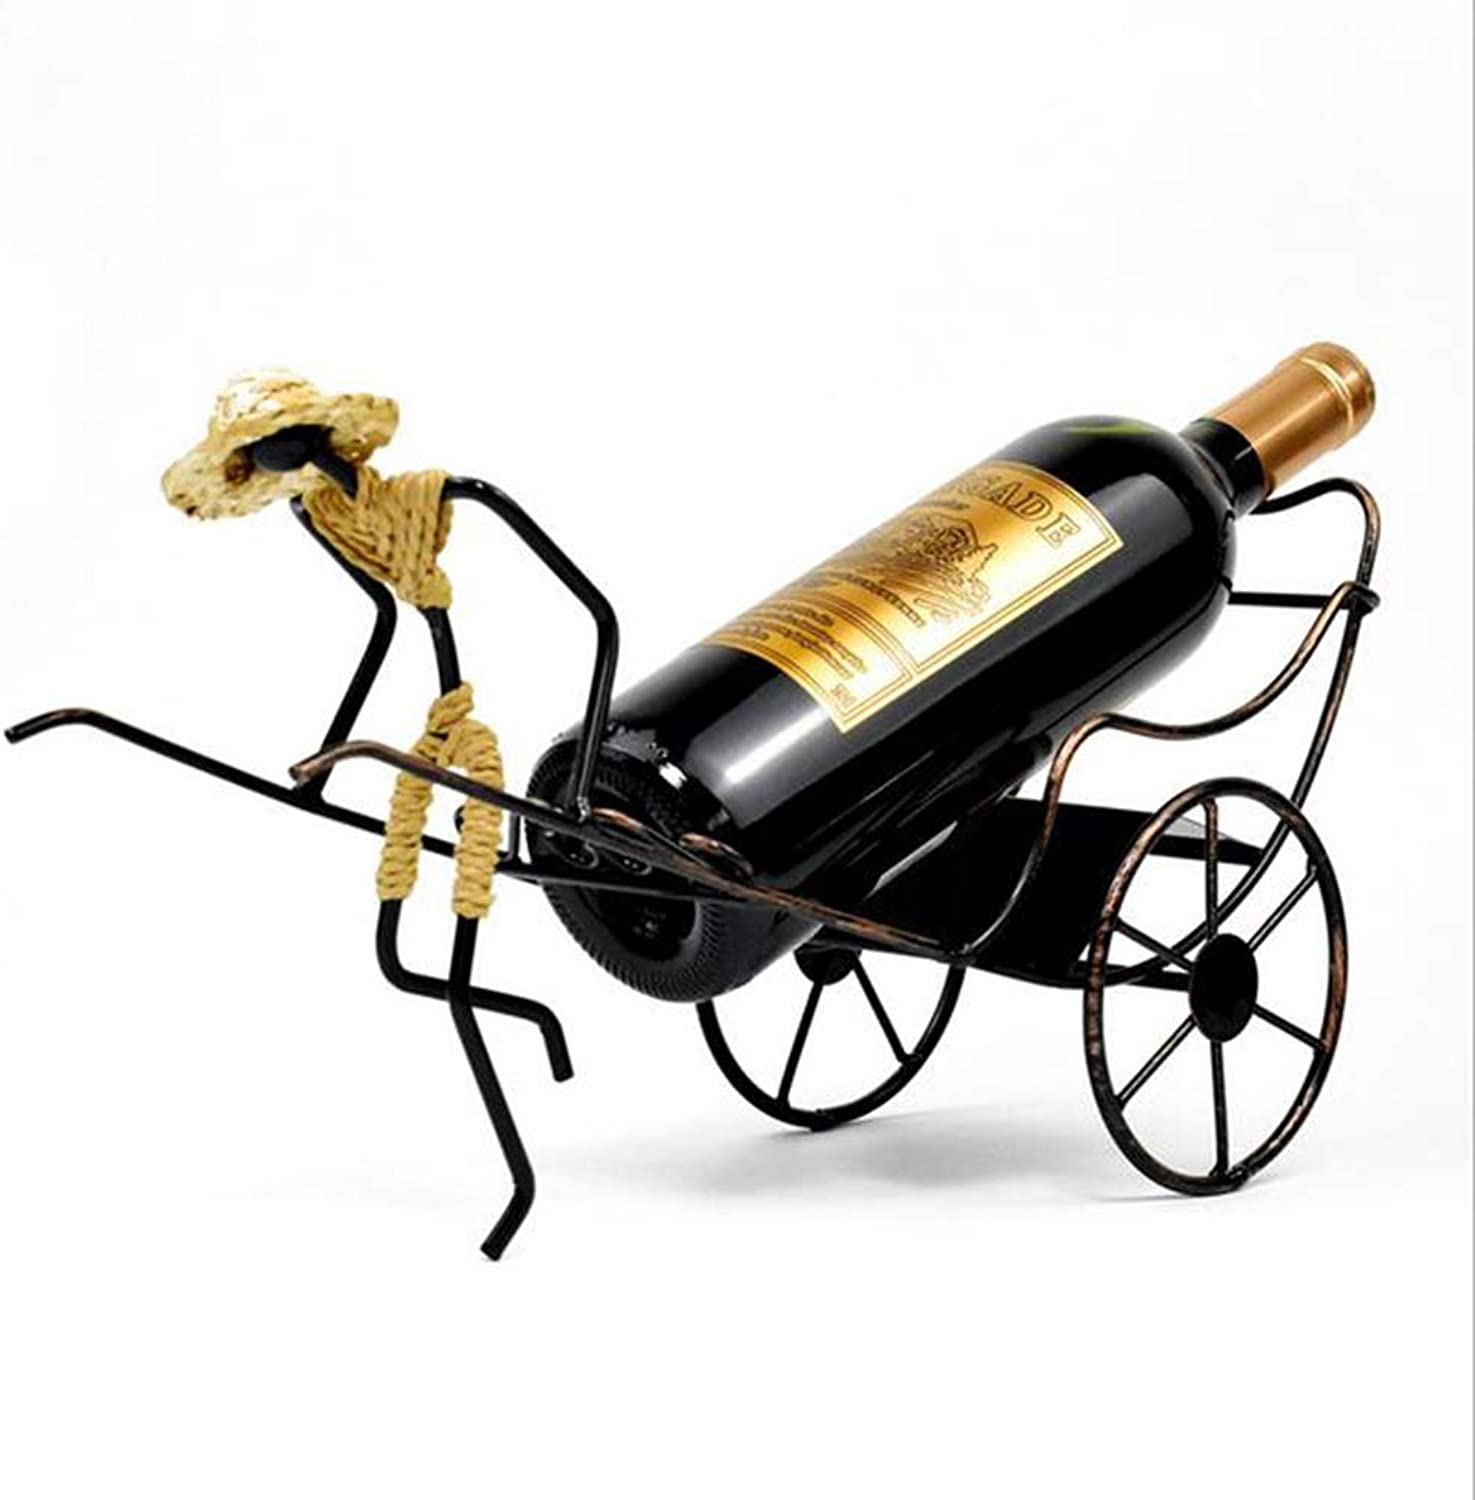 Wrought Iron Wine Rack Rickshaw Vintage Decoration Living Room Dining Room KTV Kitchen Display Stand Woven Storage Rack